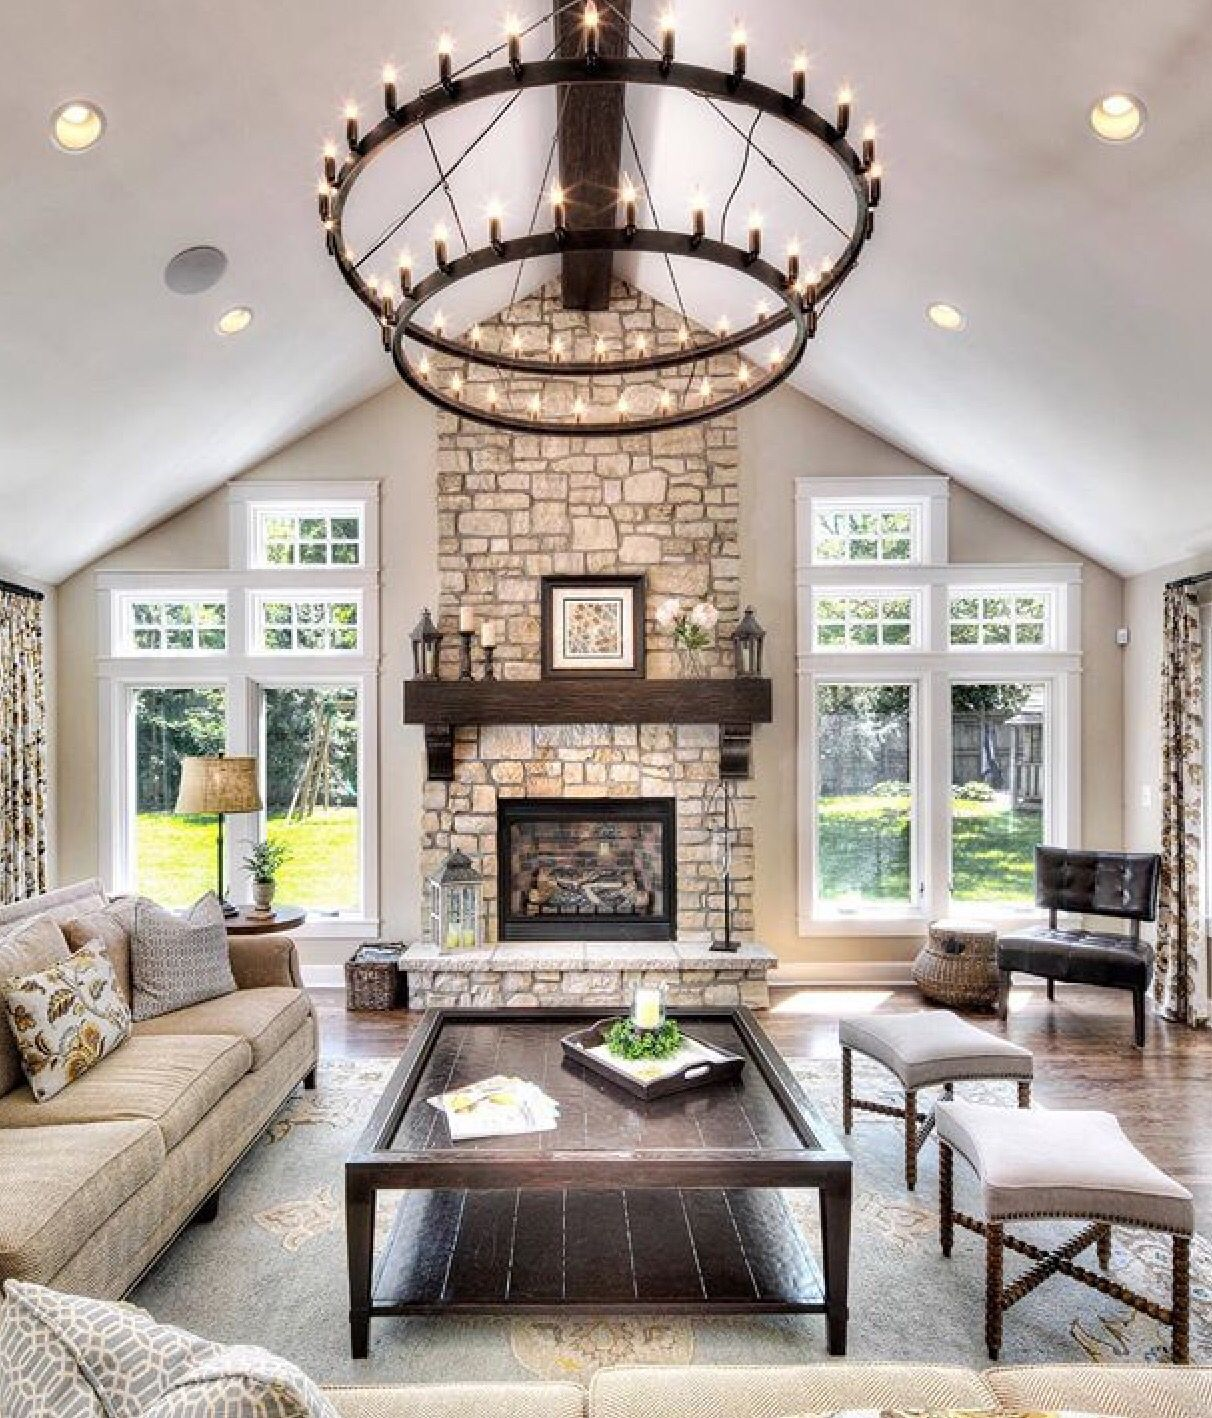 Living Room With Fireplace And Sliding Doors: 21 Home Decor Ideas For Your Traditional Living Room